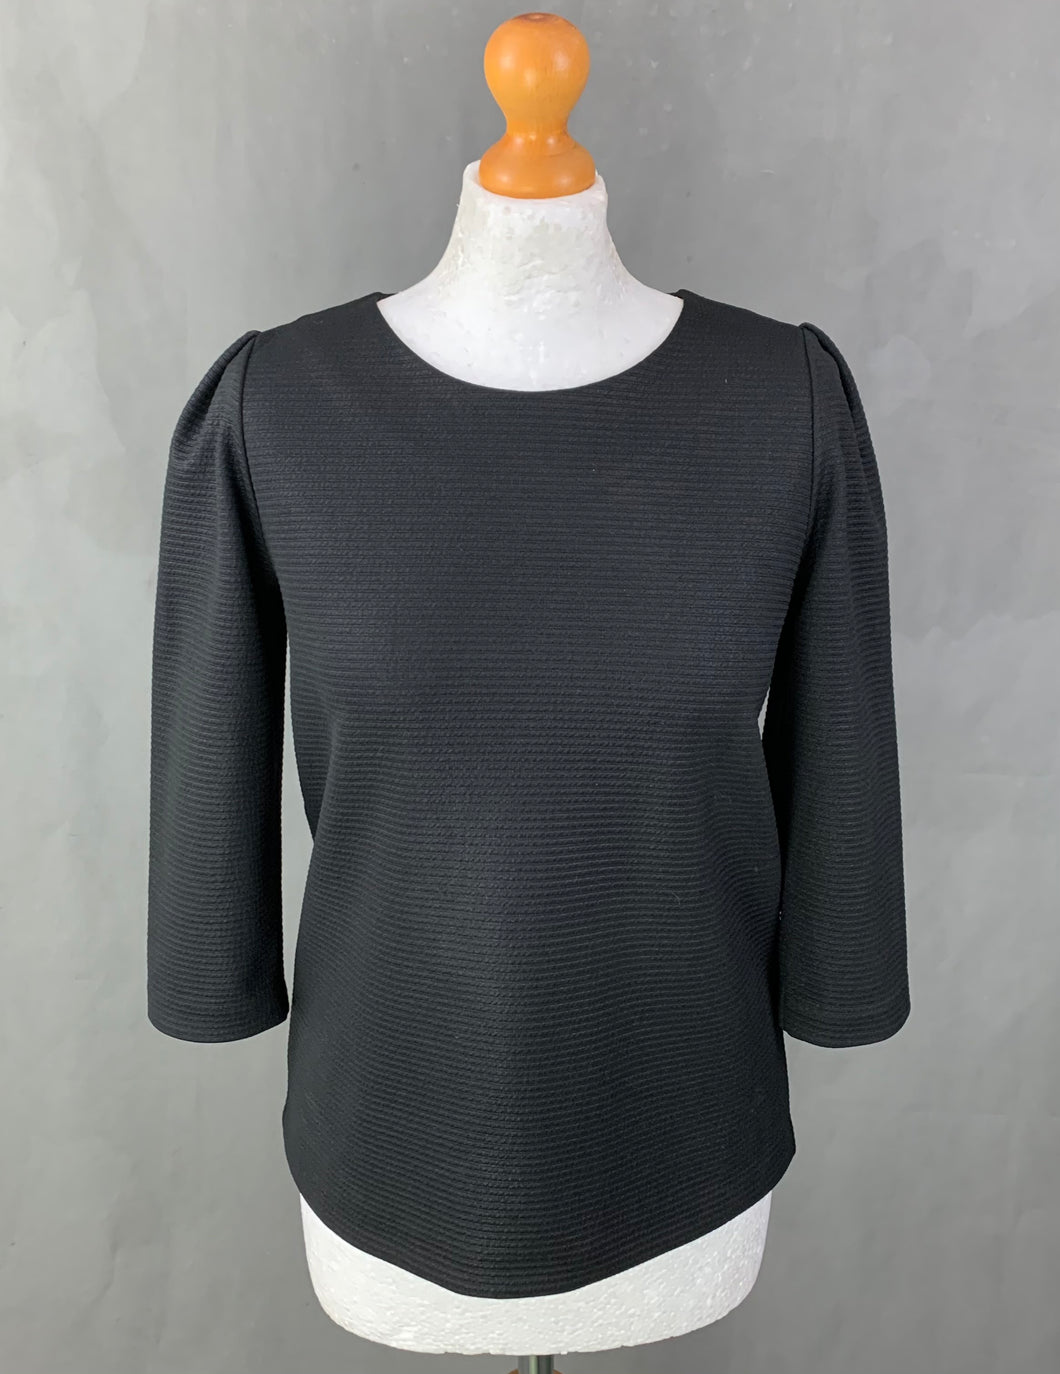 CLUB MONACO Ladies Black Top - Size S - Small